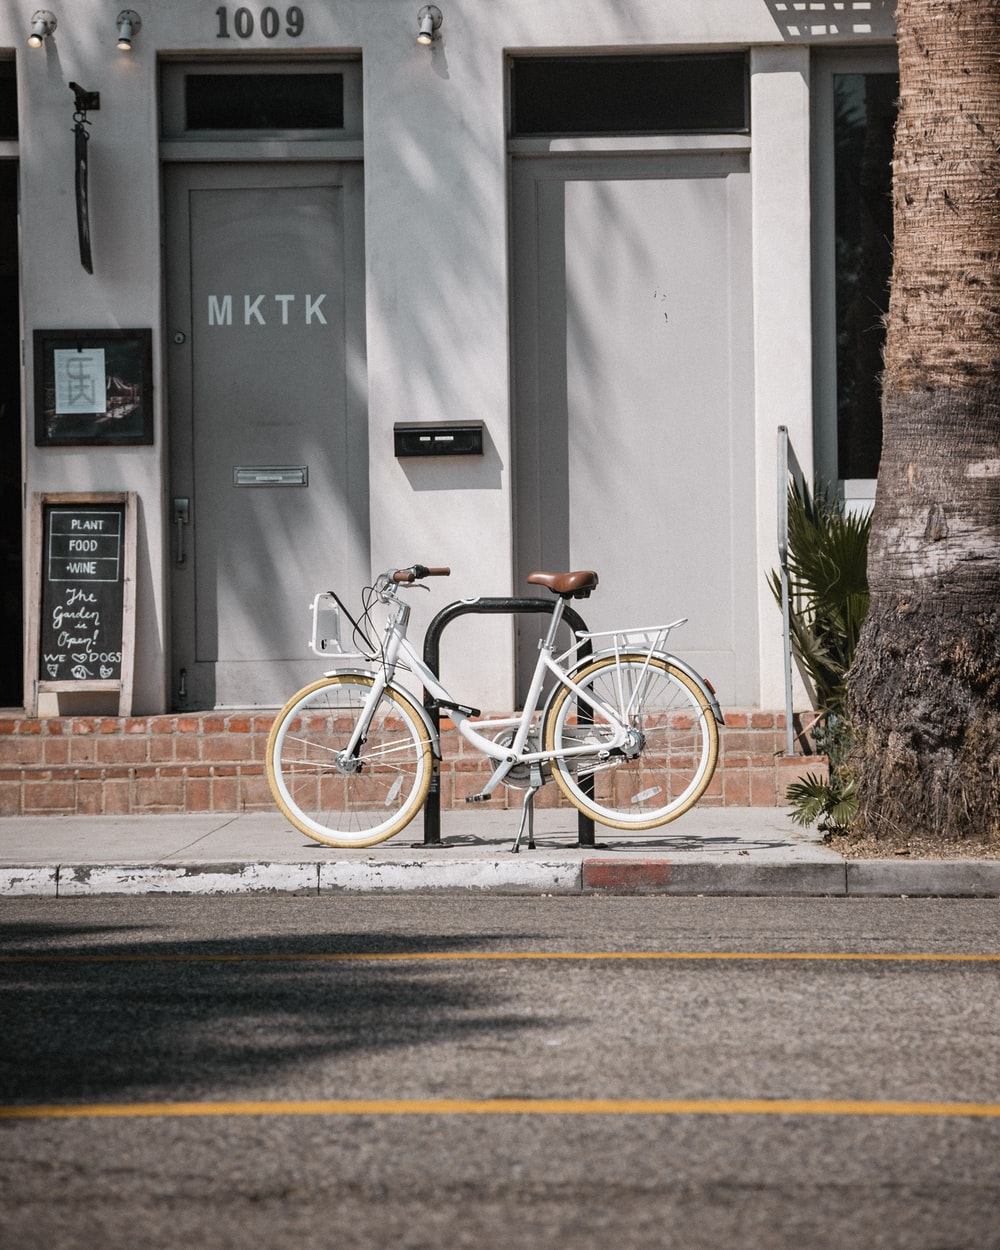 white commuter bike parks at paddock stand in front building number 1009